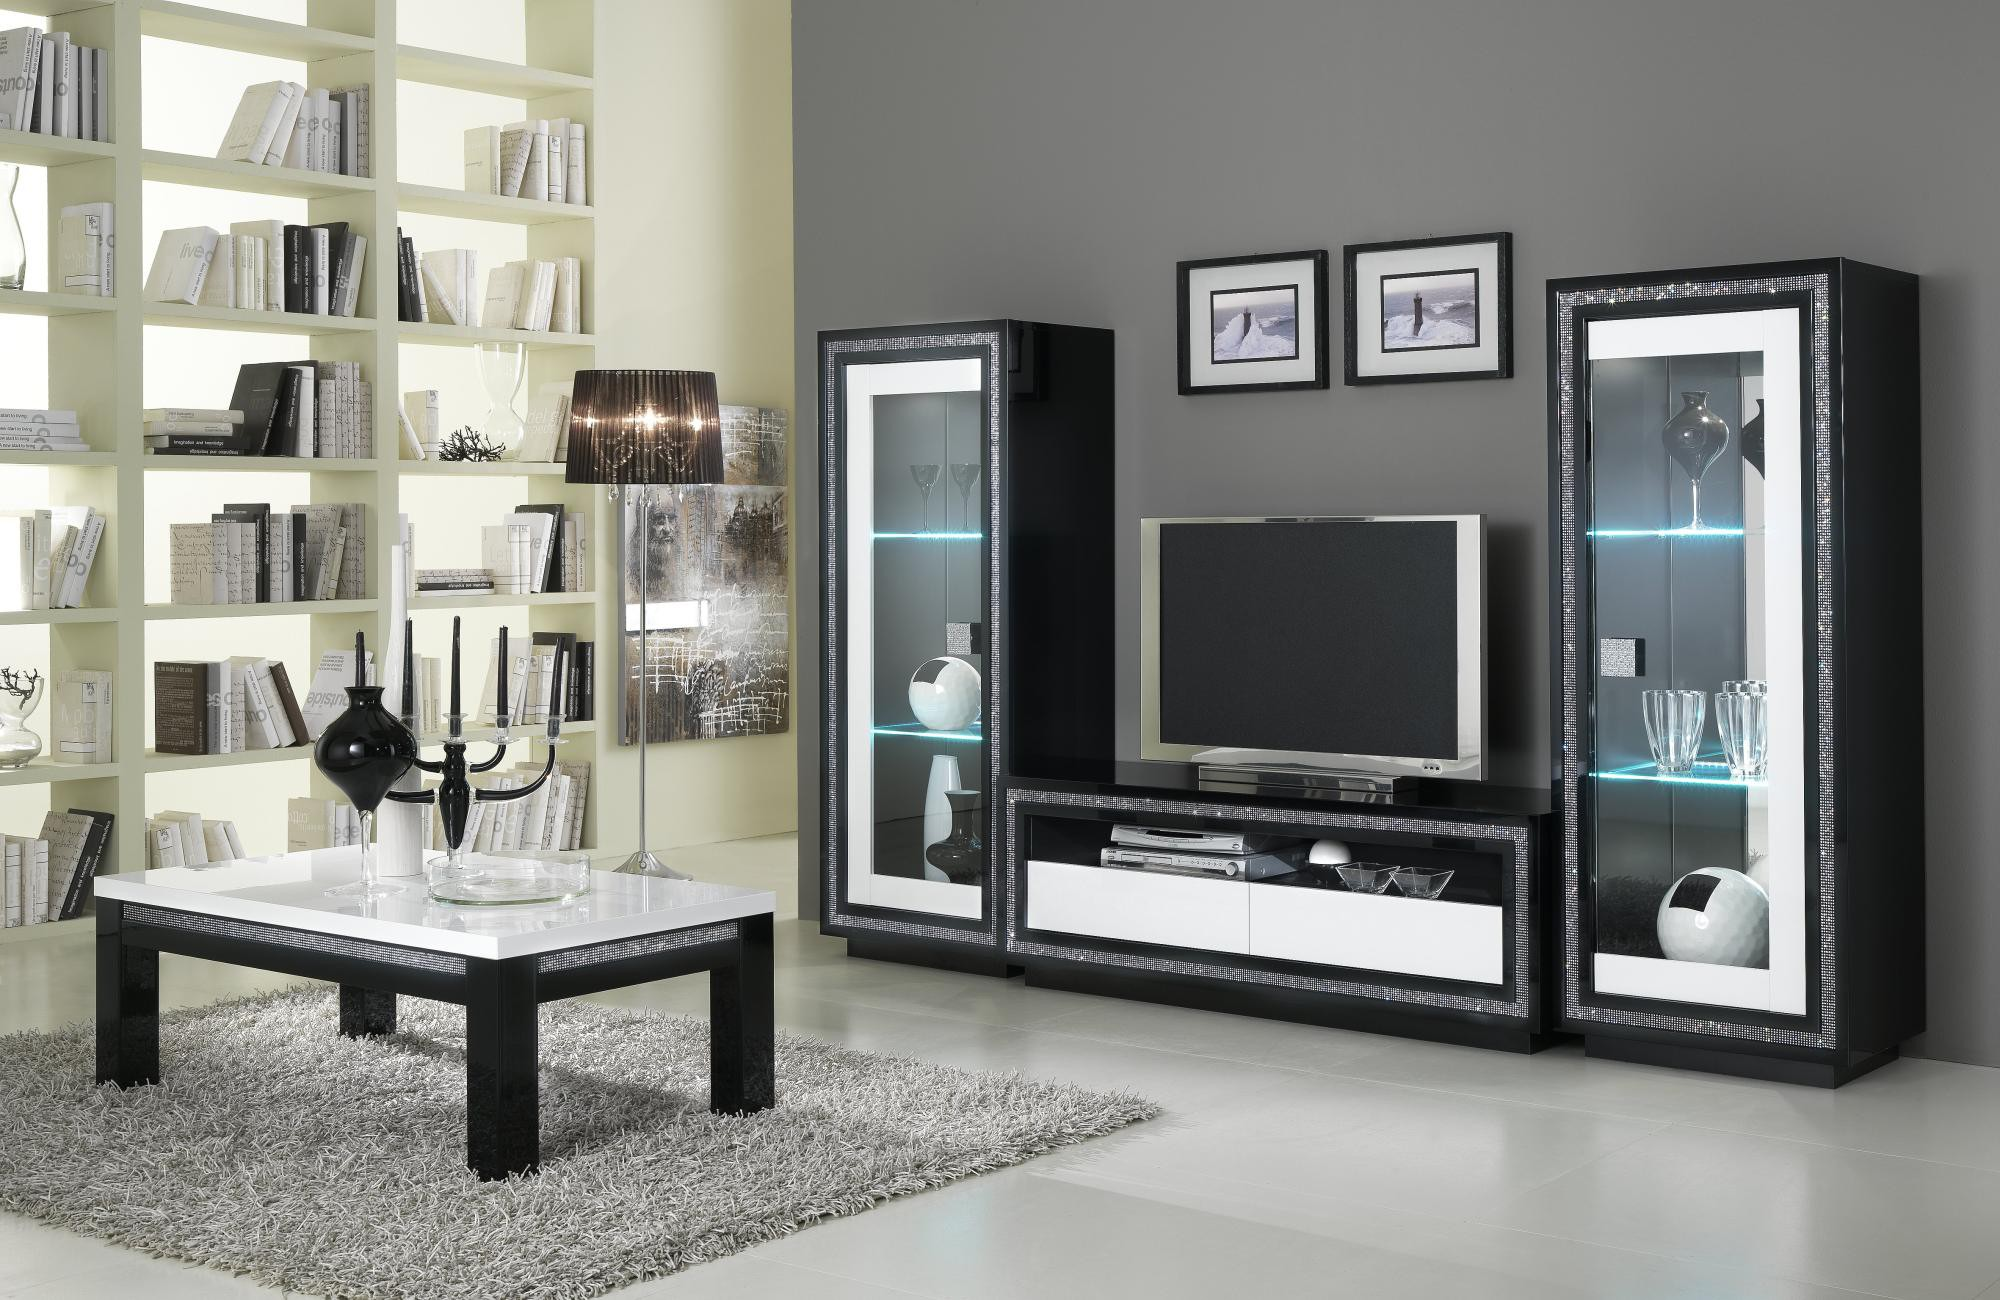 meuble tlphone moderne cool aqua with meuble tlphone moderne meuble et vasque salle de bains. Black Bedroom Furniture Sets. Home Design Ideas